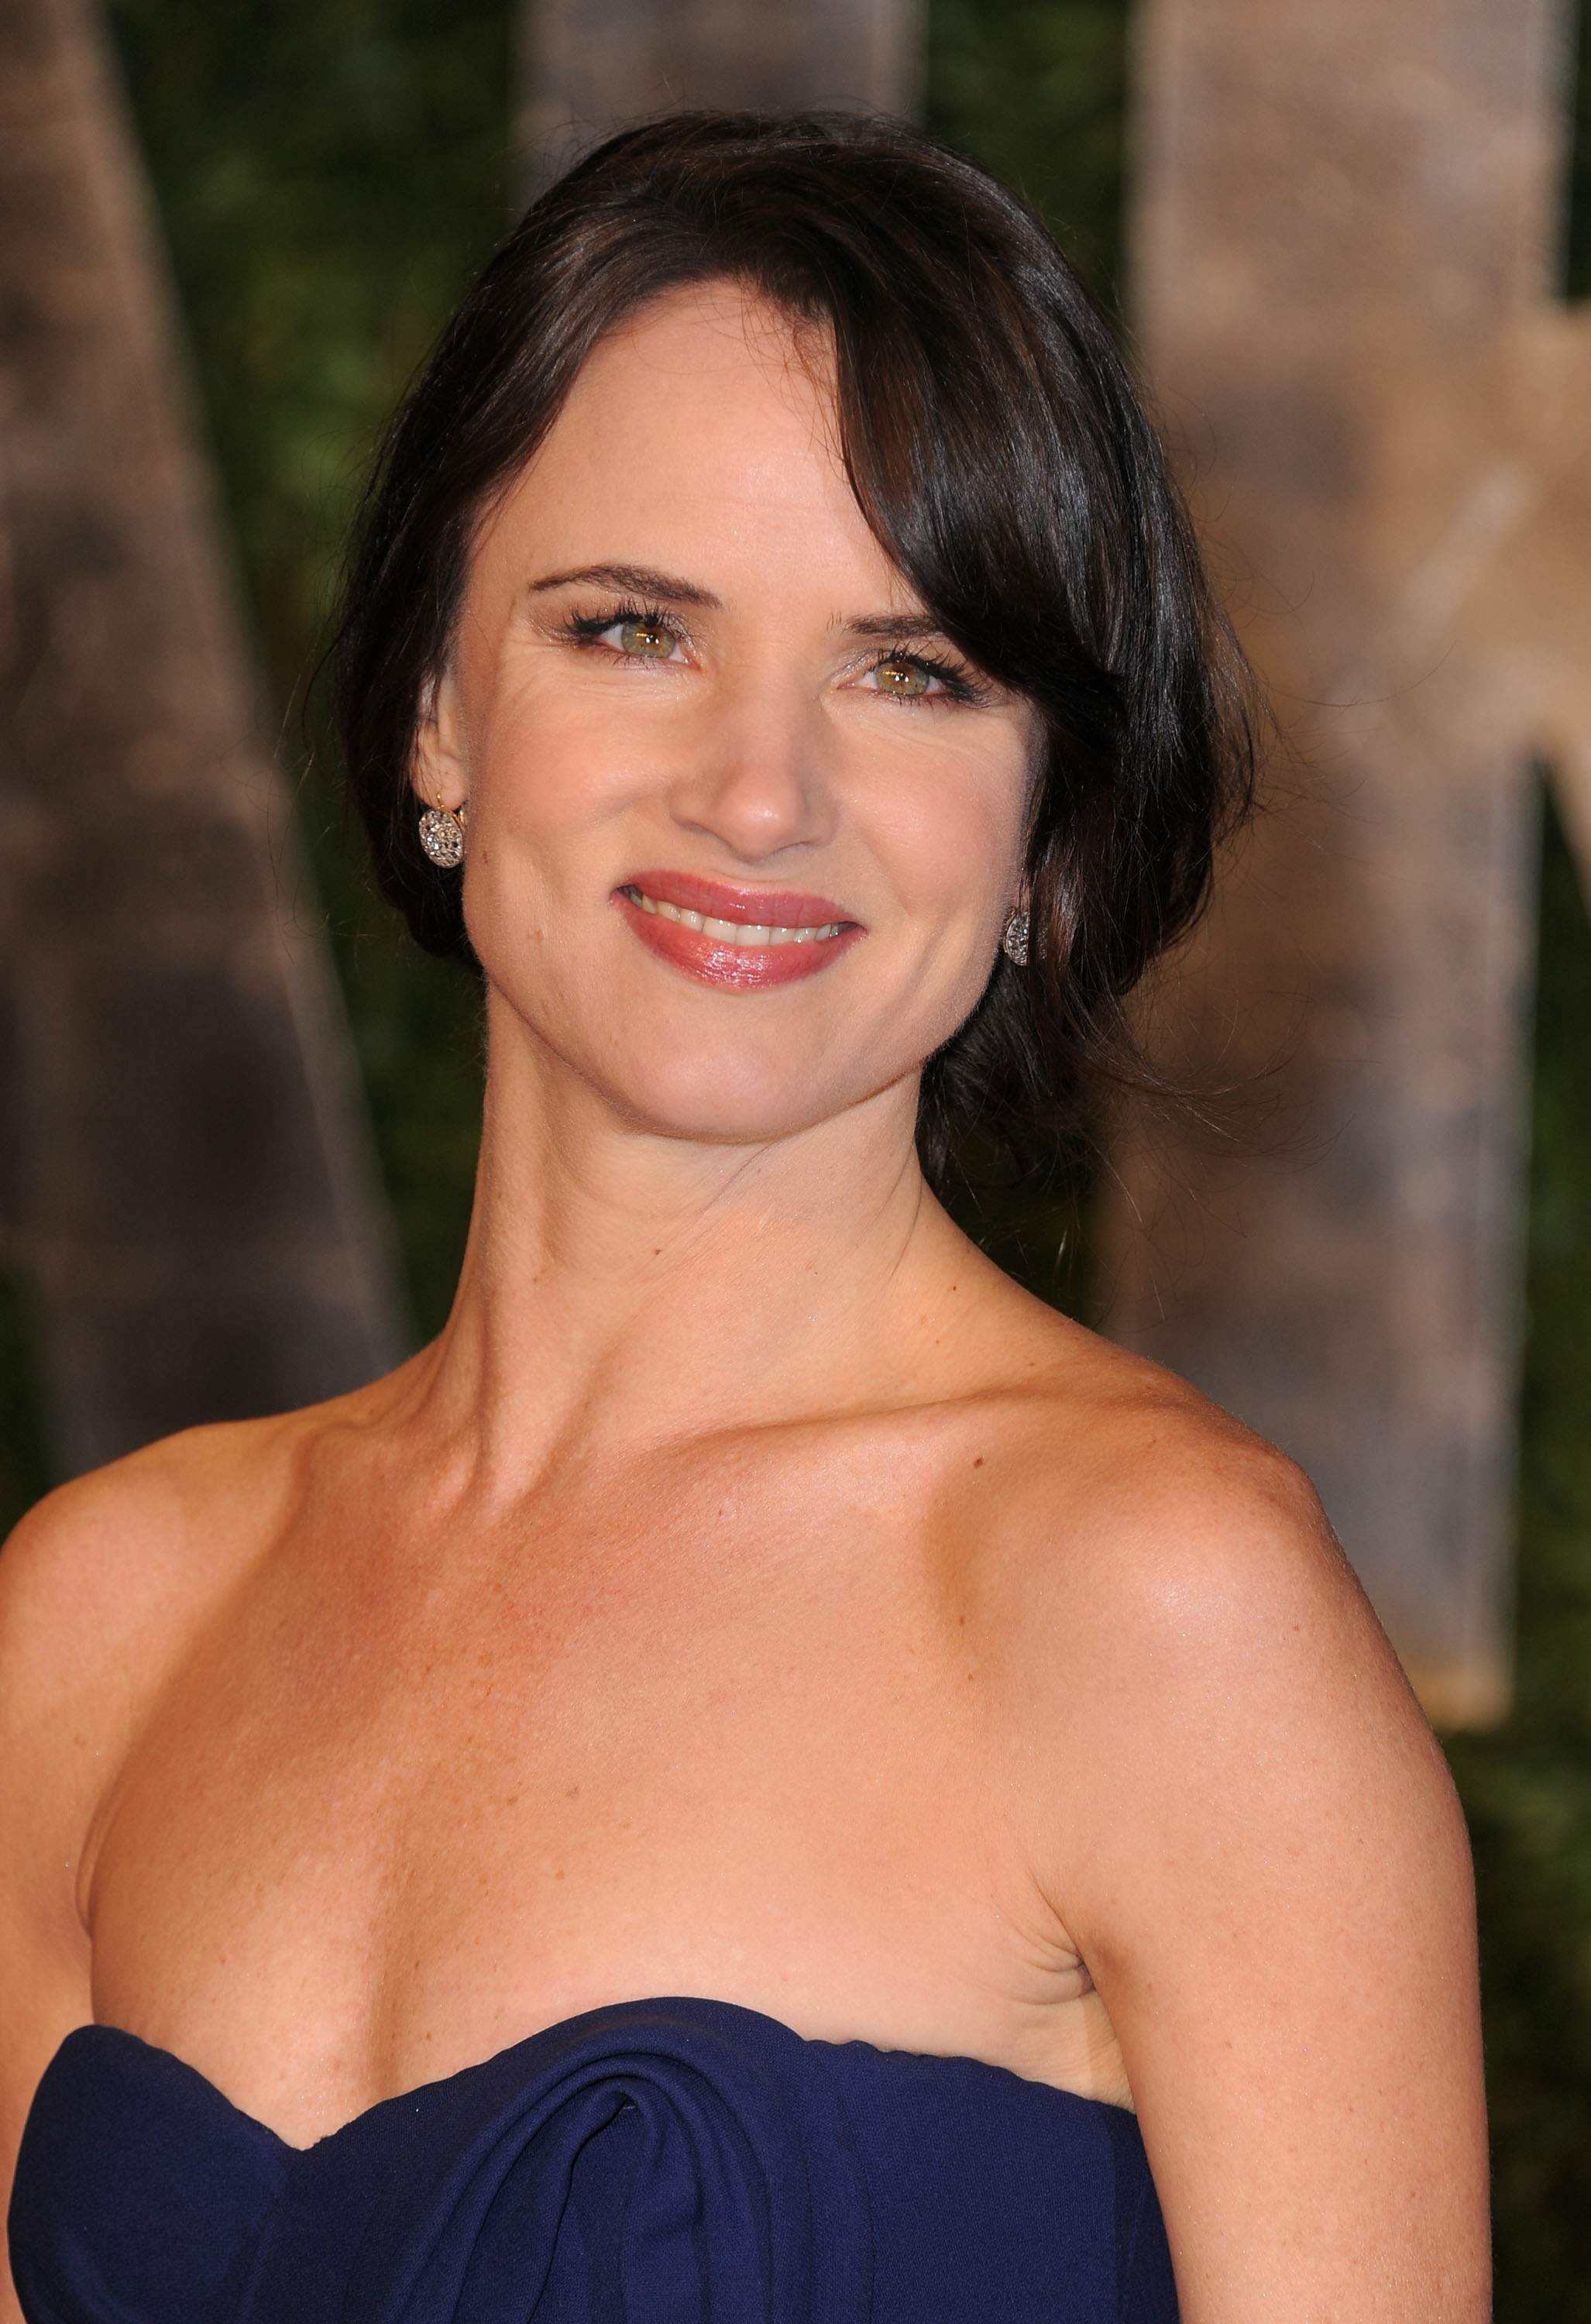 Juliette Lewis - Gallery Colection